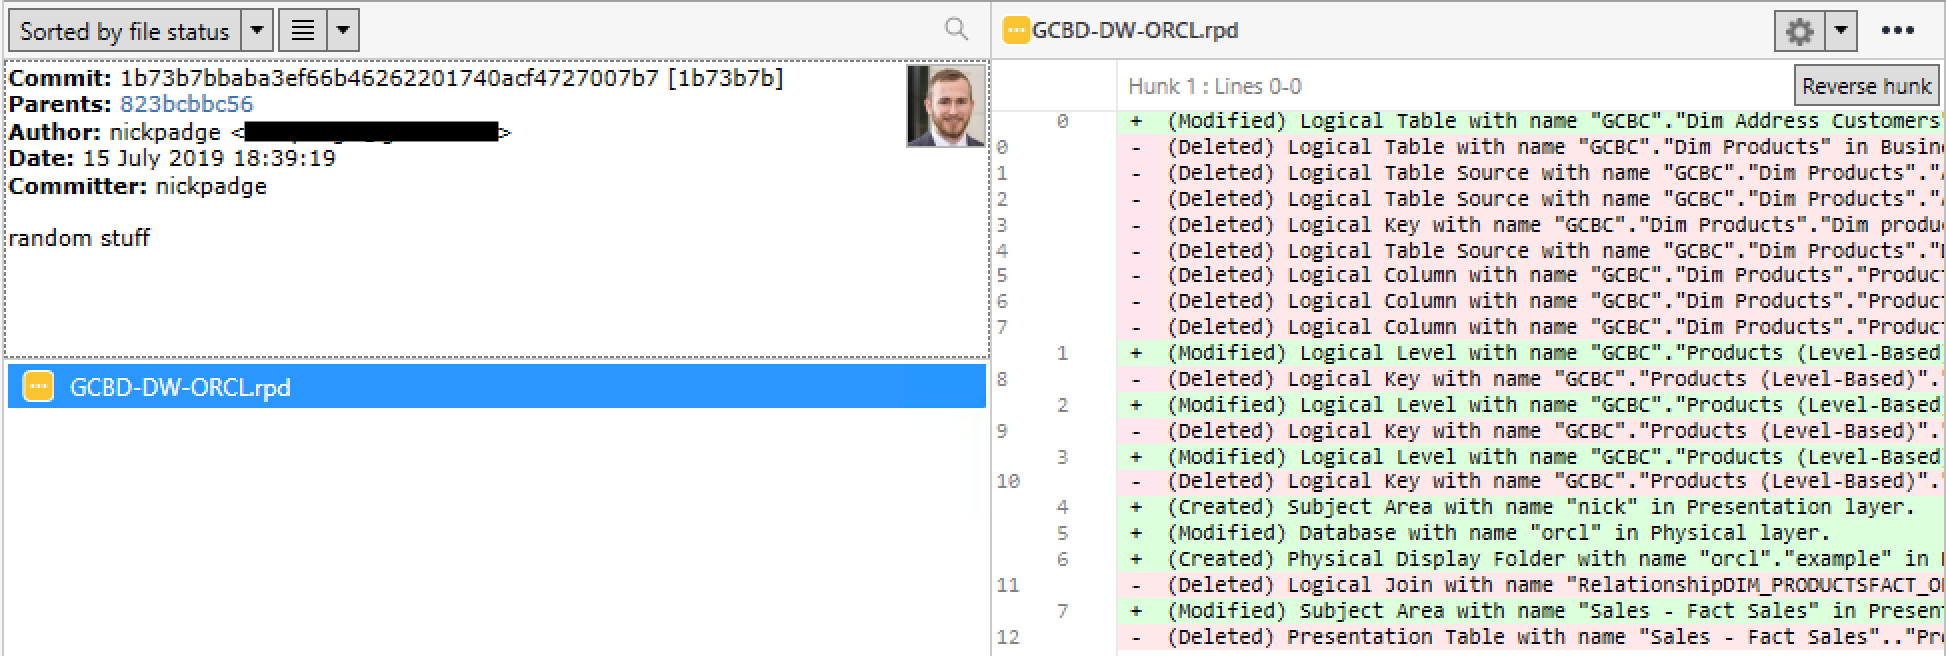 obiee comparing rpd files with git_5